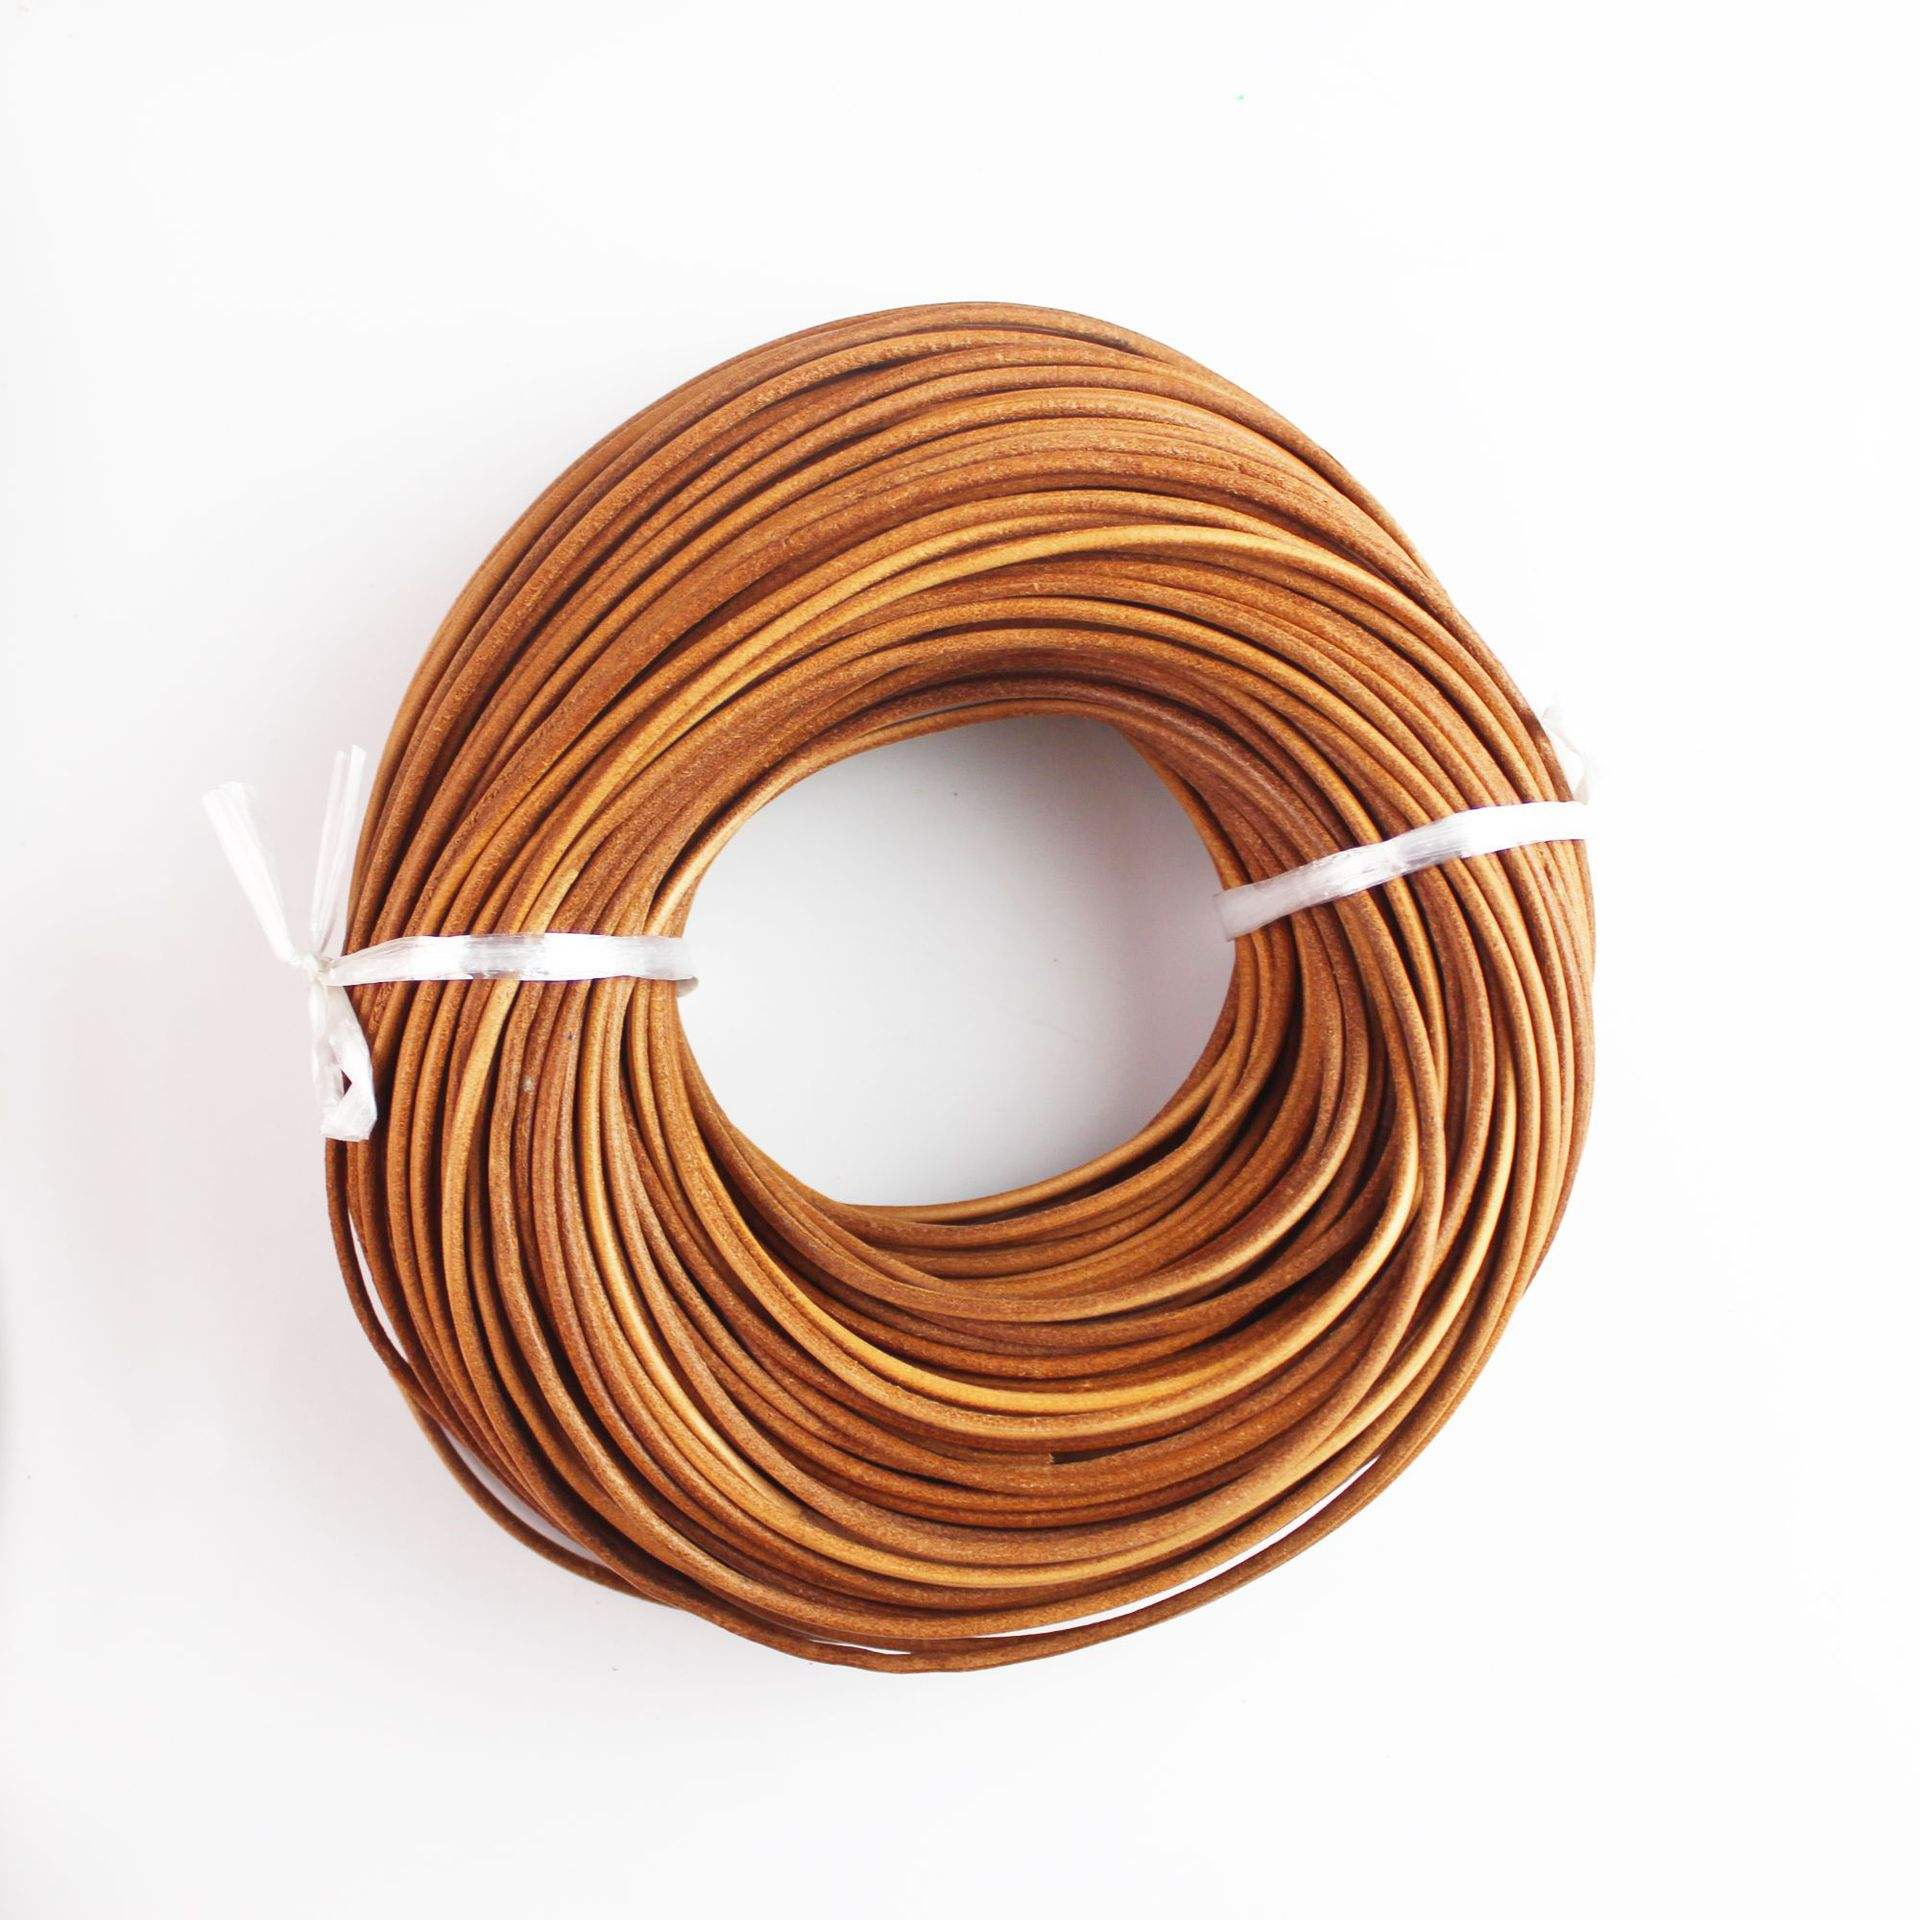 Round 3mm5mm genuine leather string cowhide rope creative amazon diy accessories mobile phone shell leather rope braided rope